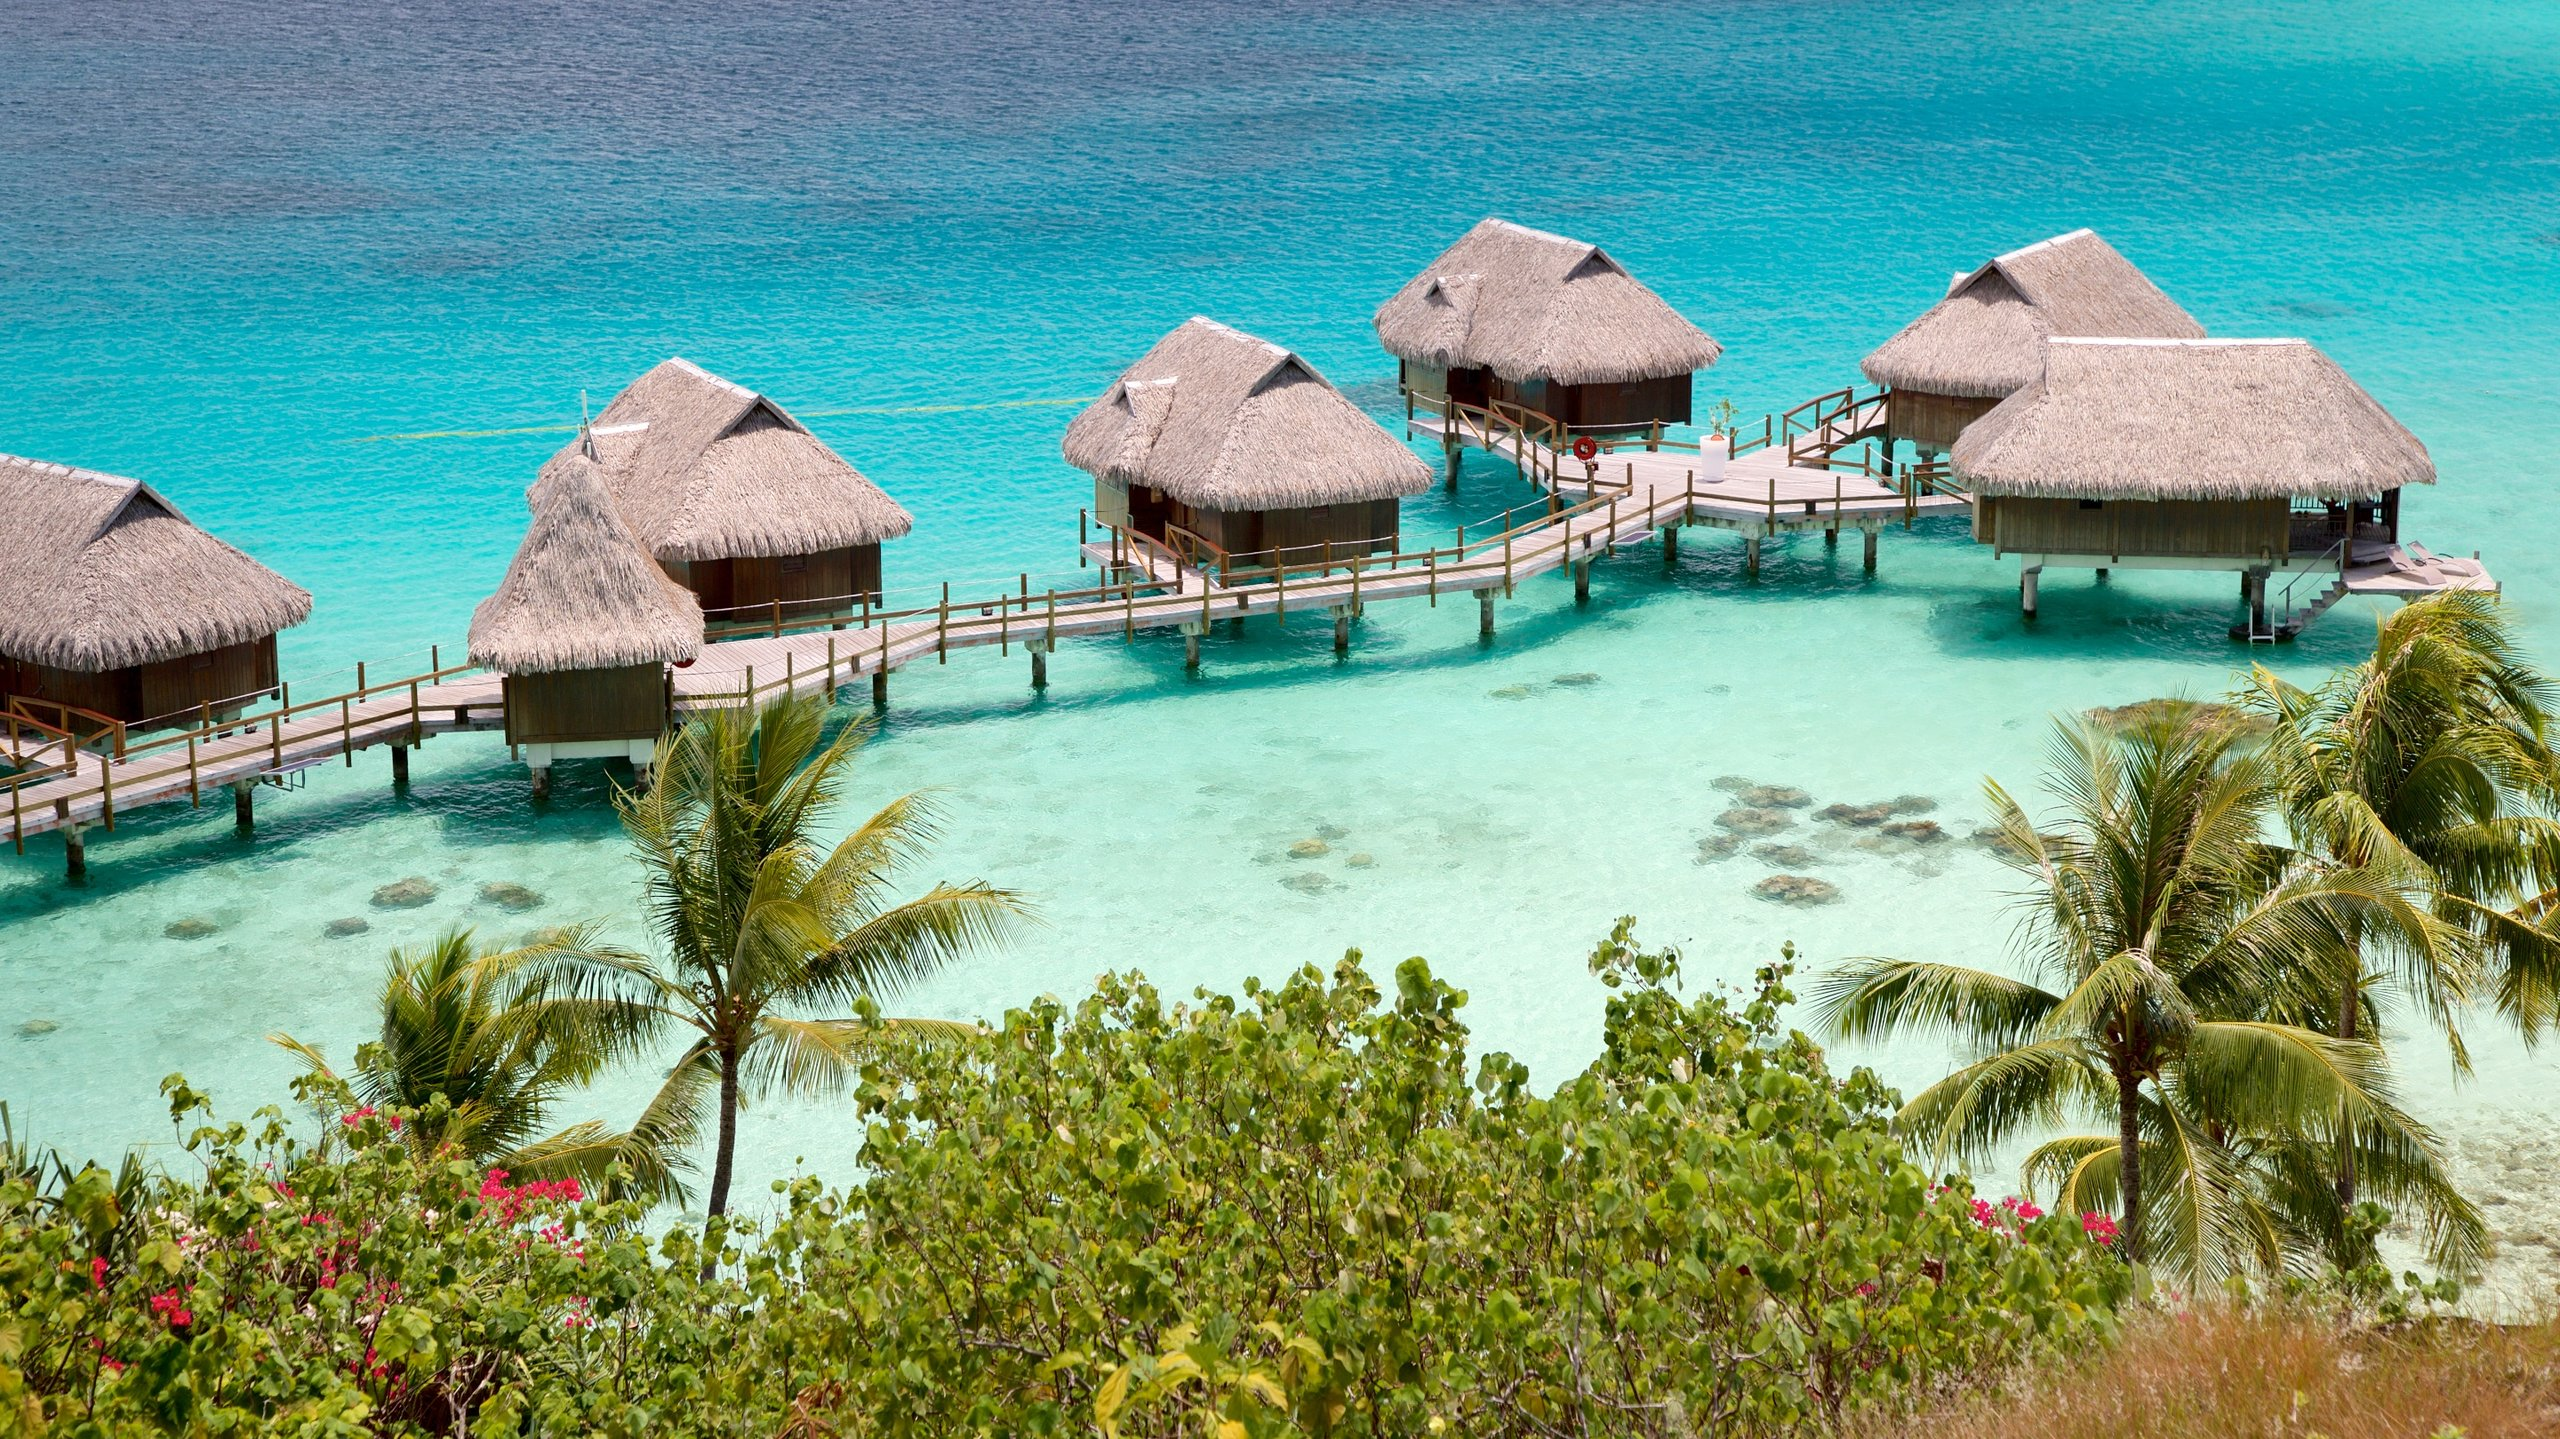 Top 10 Cheap Hotels in Bora Bora  Expedia